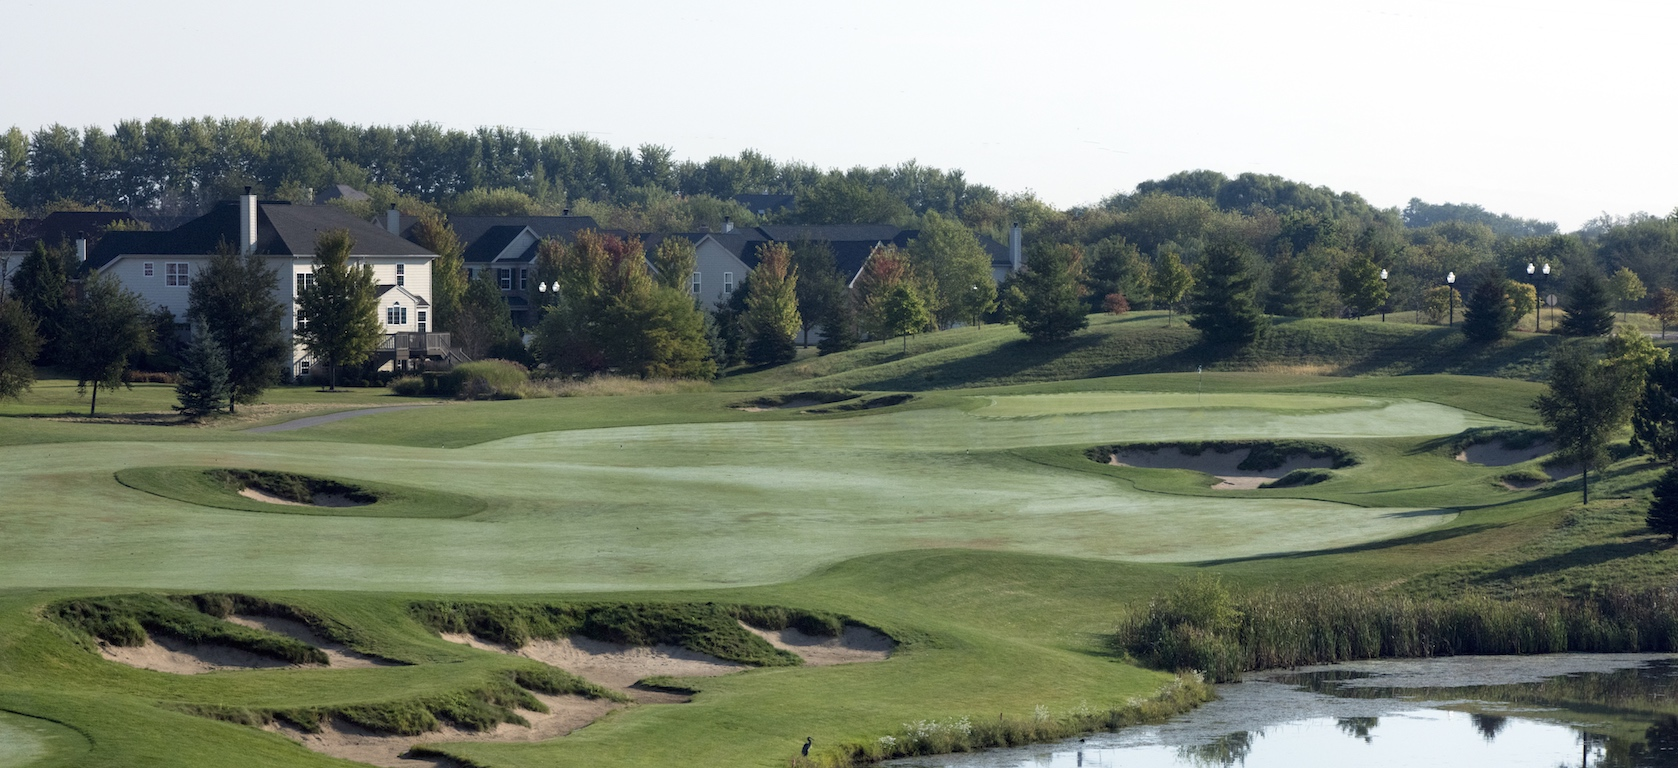 View of golf course and homes in Bowes Creek Country Club Toll Brothers community.